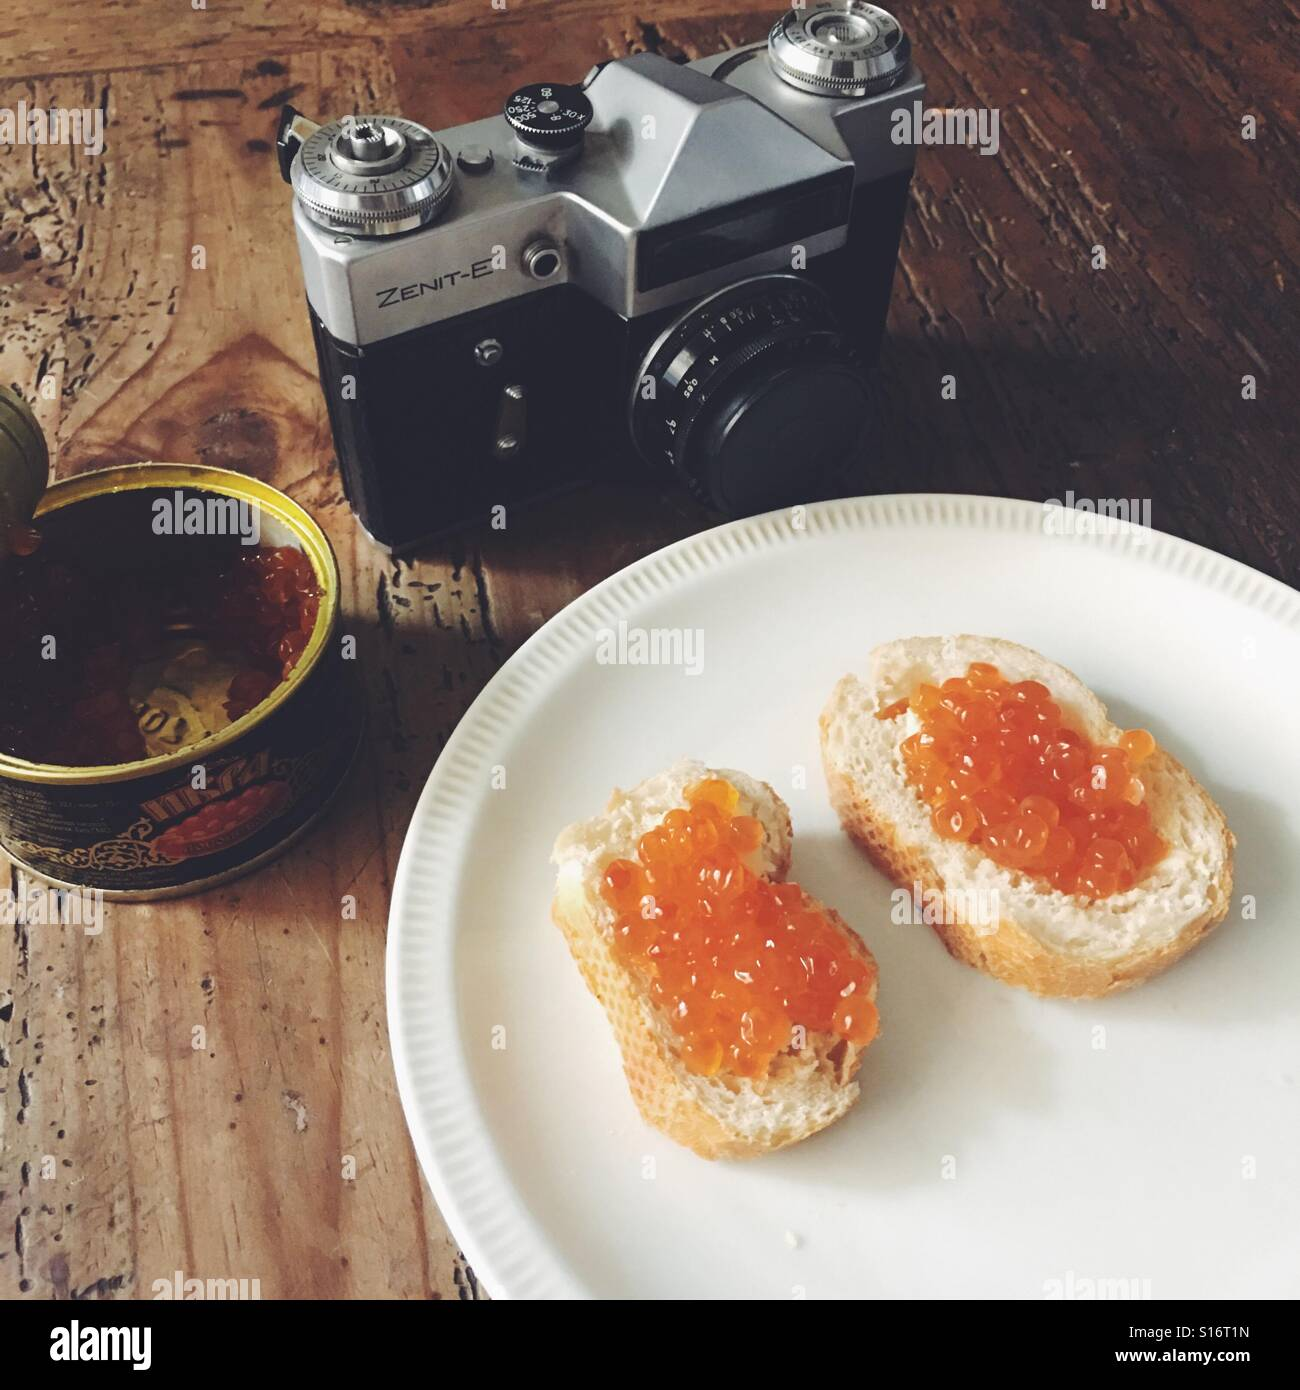 Caviar and old soviet camera Russian style - Stock Image